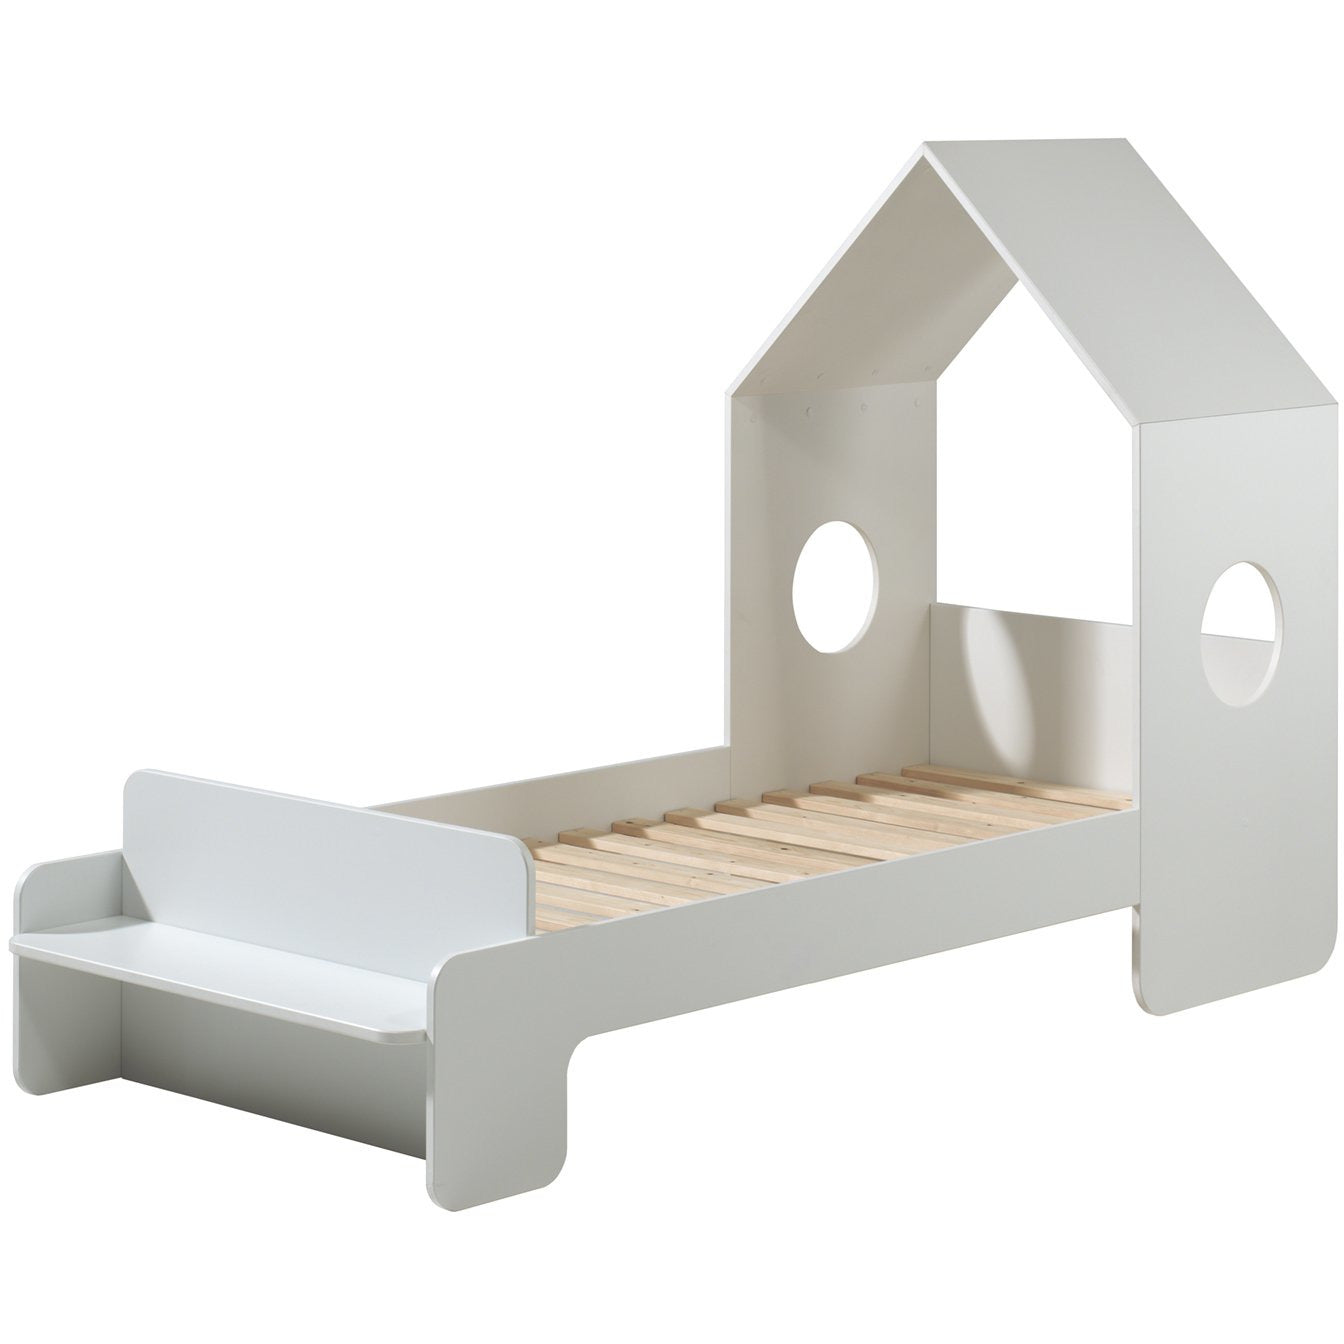 Casami House Bed 90x200cm